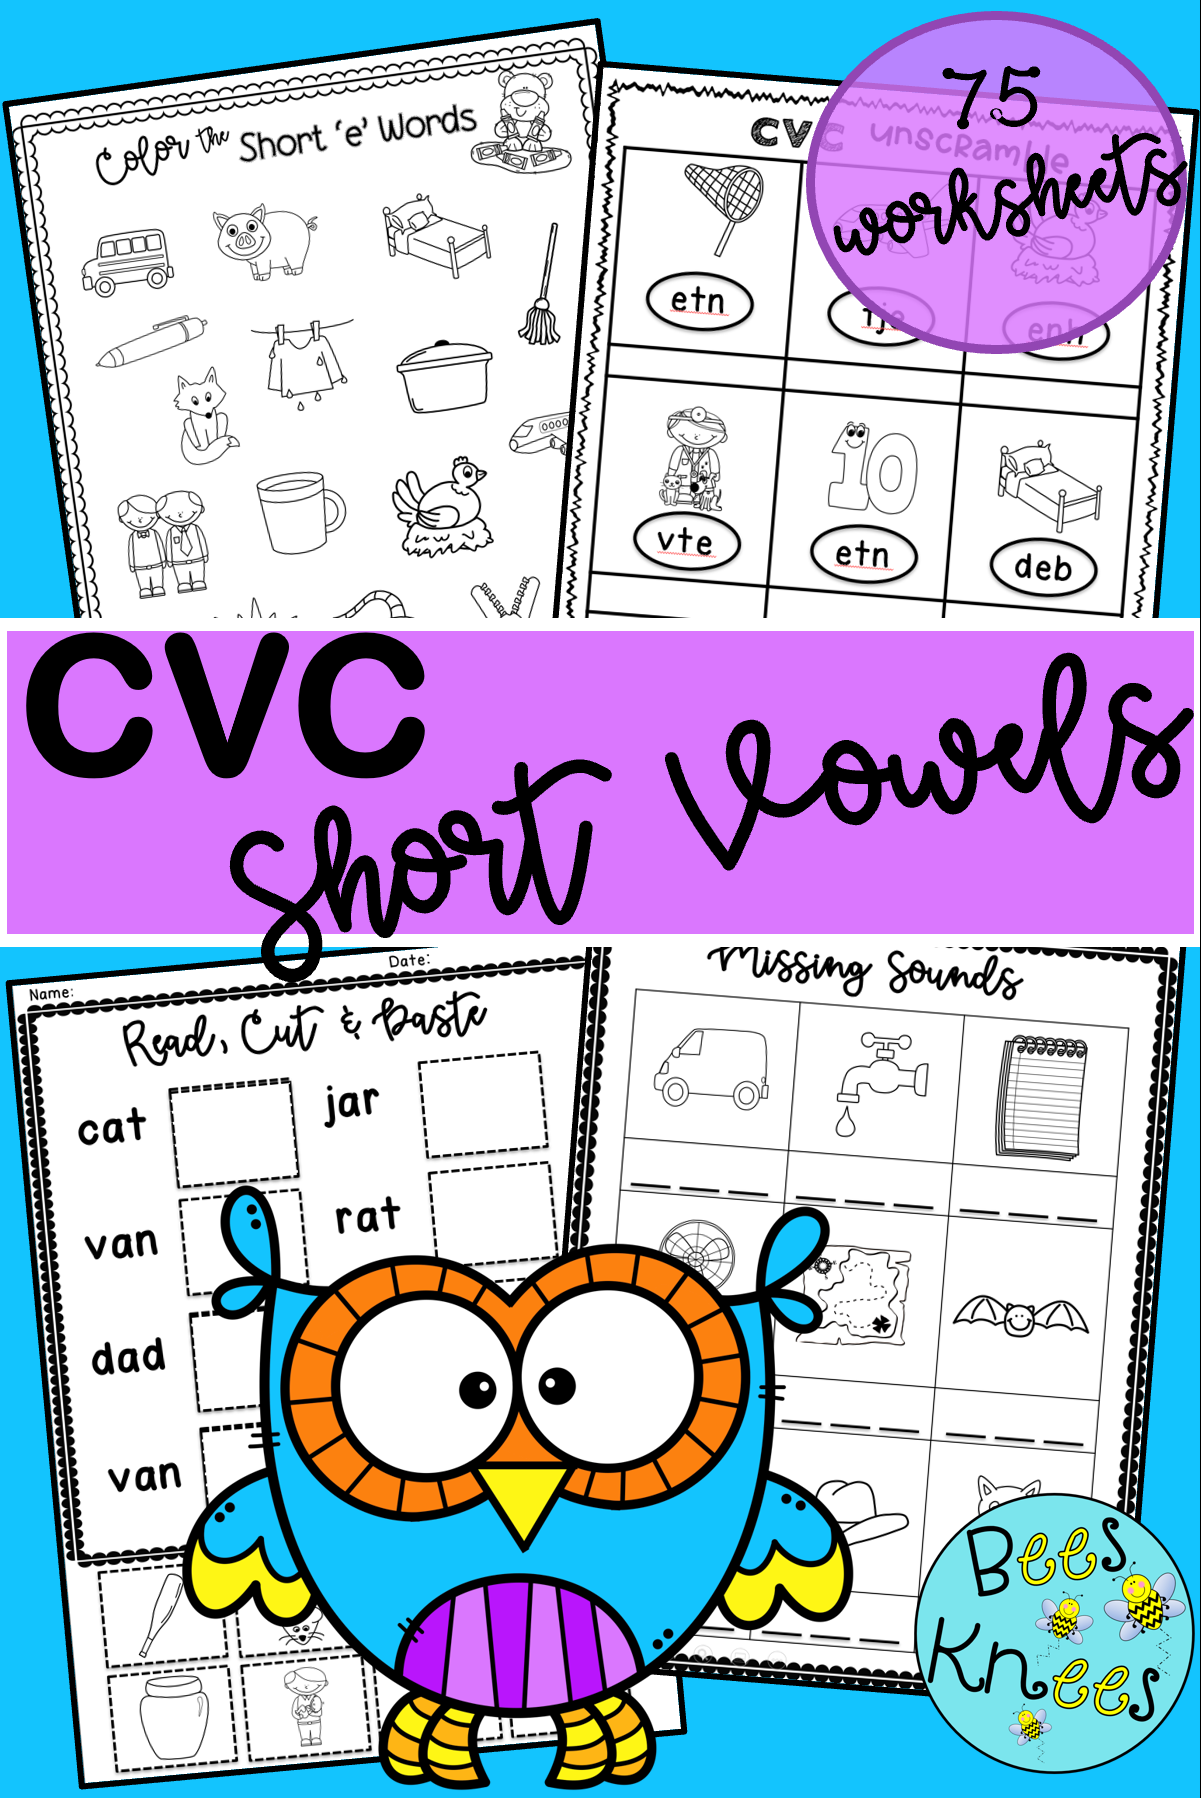 Cvc Short Vowel Worksheets In